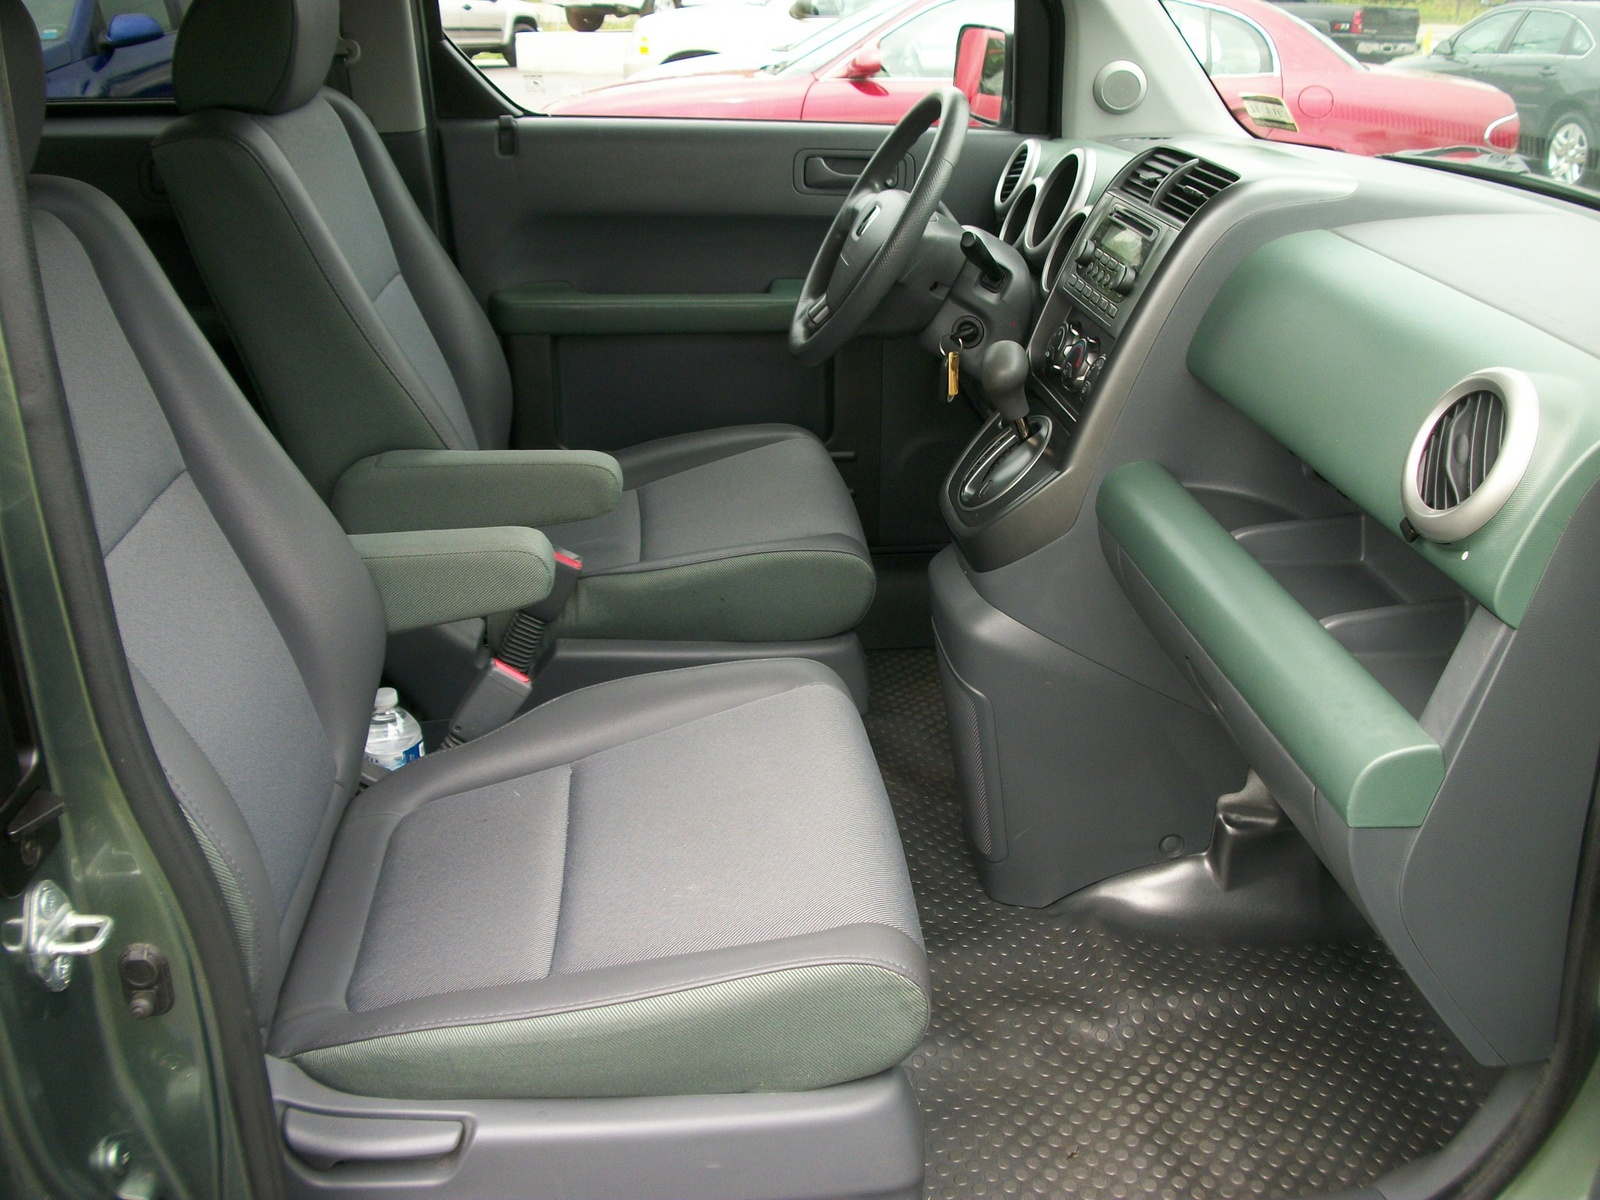 2005 Honda Element Interior Pictures Cargurus